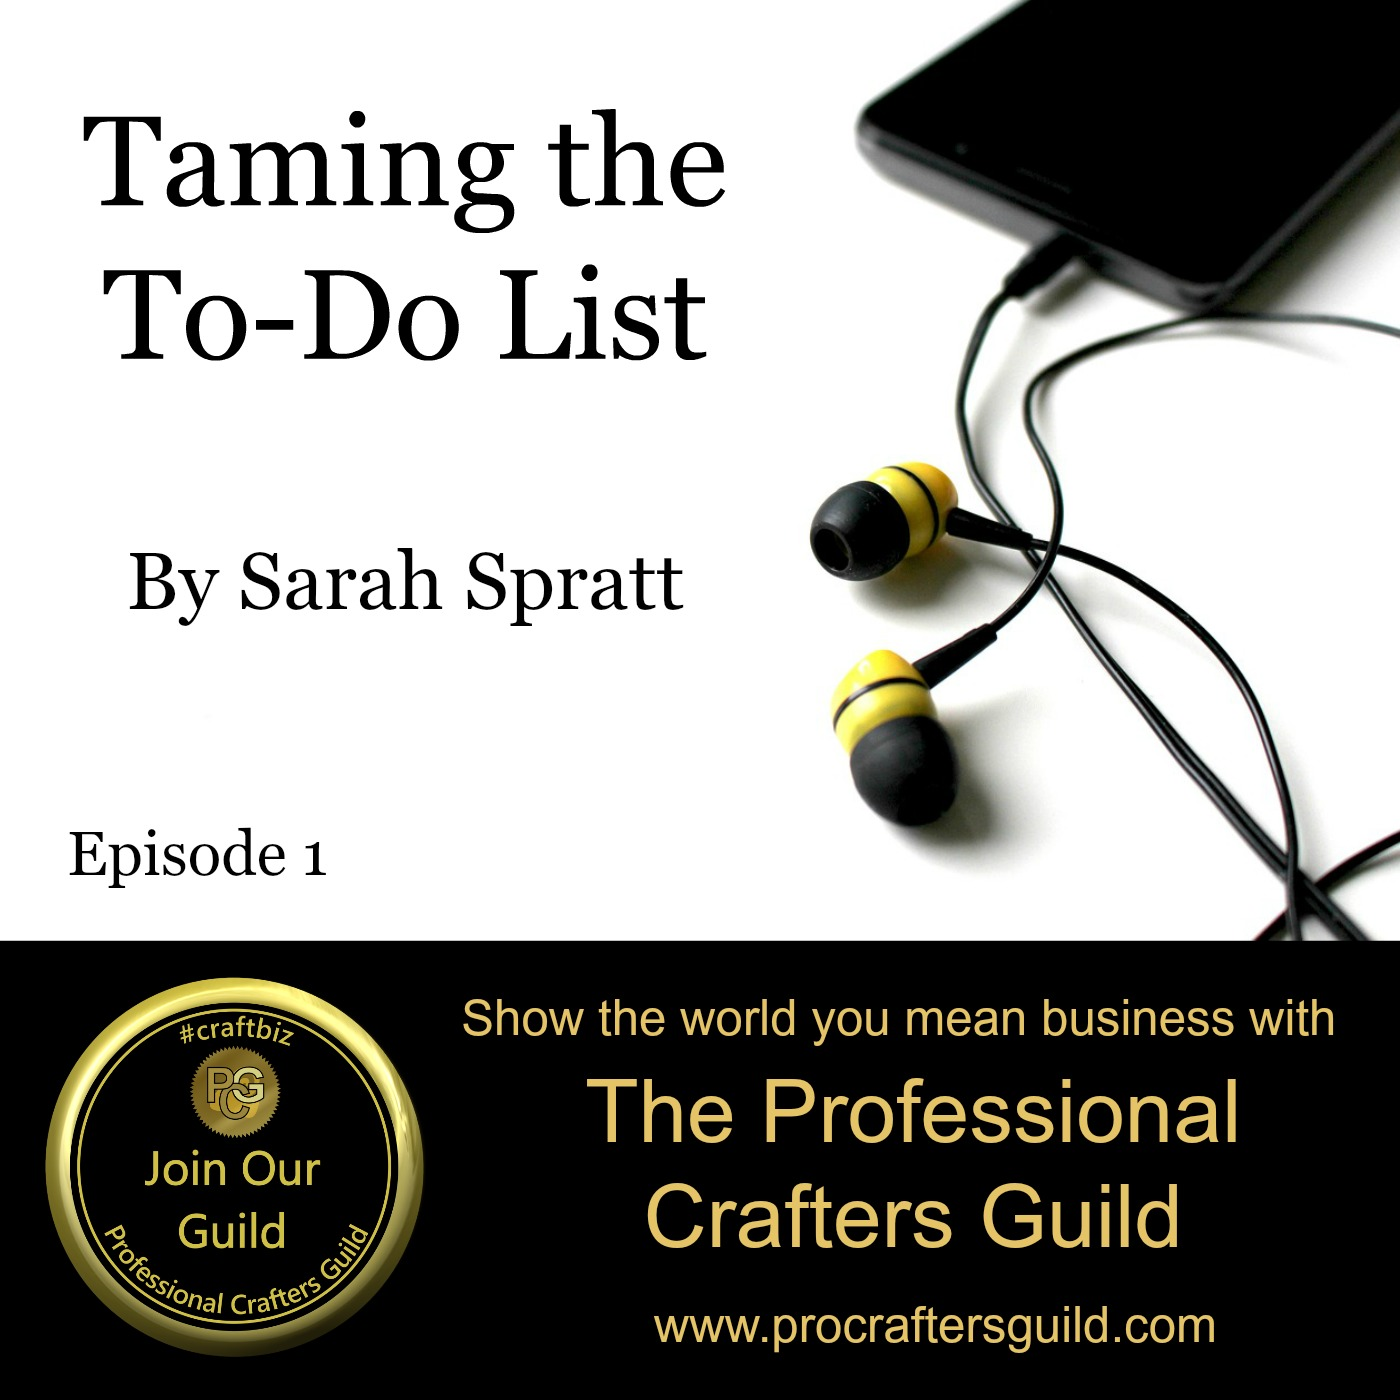 [1] Taming the  To-Do List By Sarah Spratt